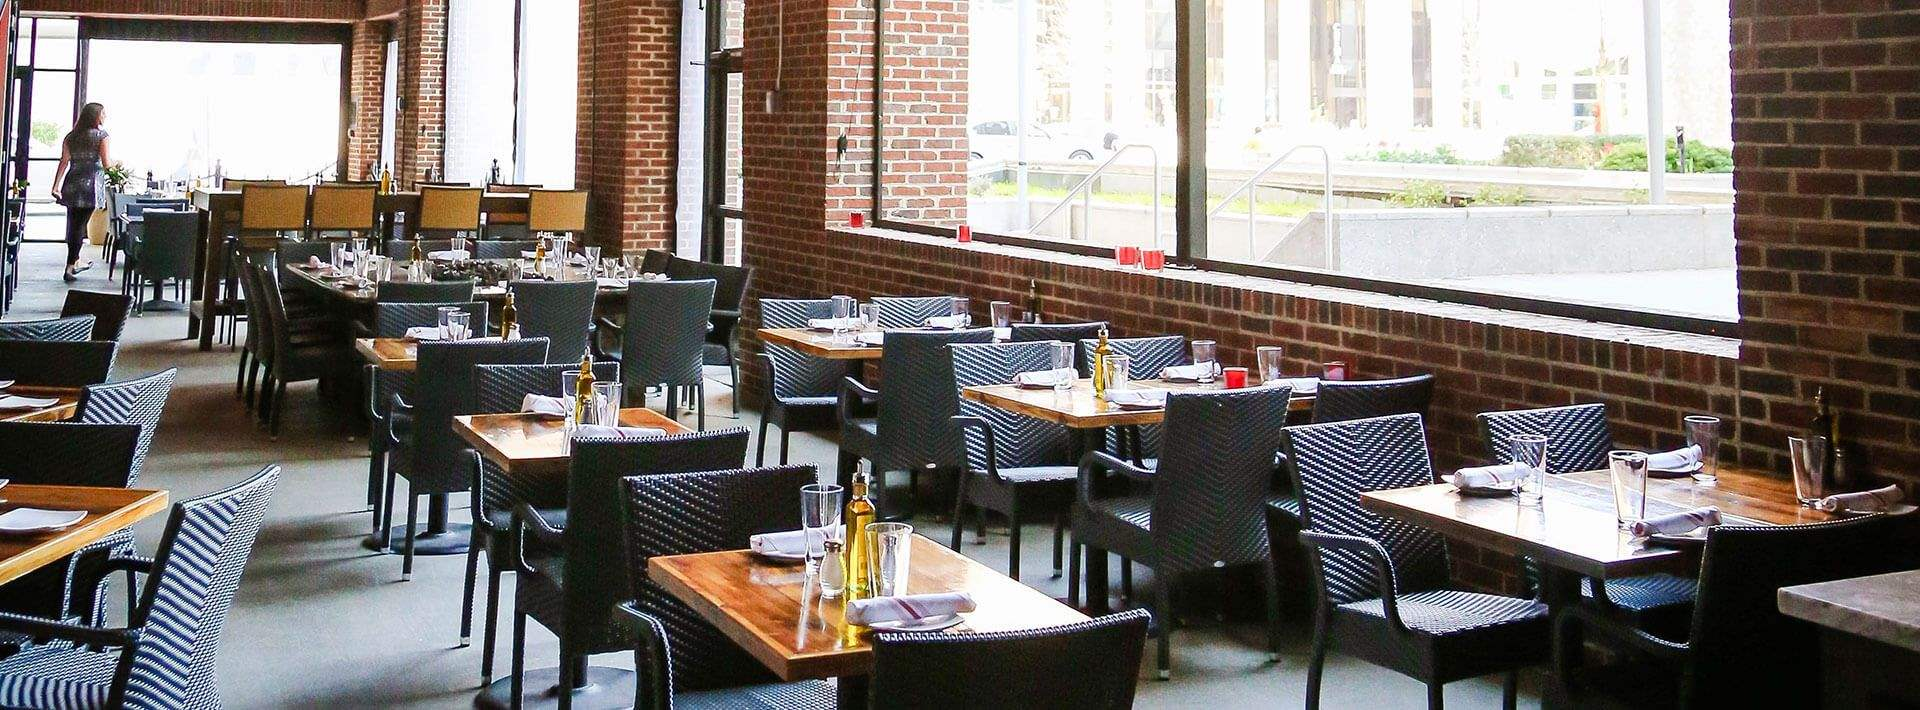 Jimmy V's Osteria + Bar, Raleigh